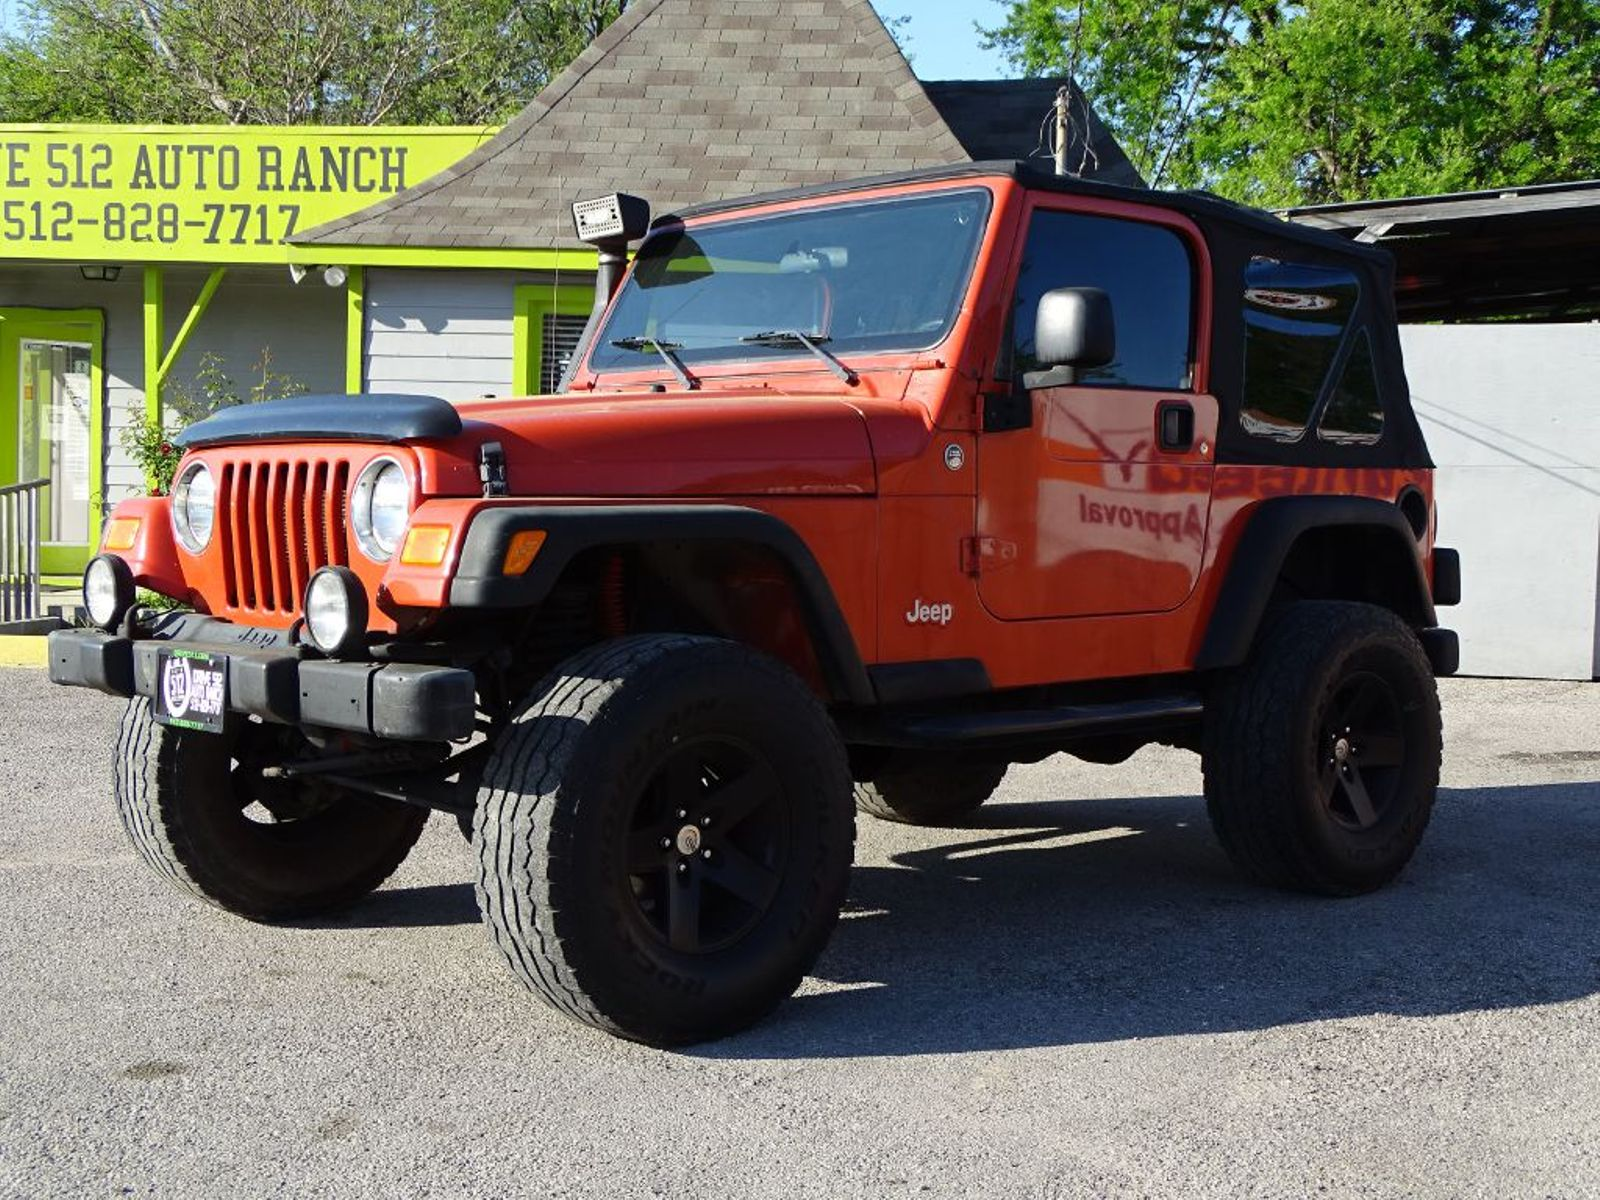 austin and tx texas vlp offers gallery wrangler lease sale pricing jeep for new image finance